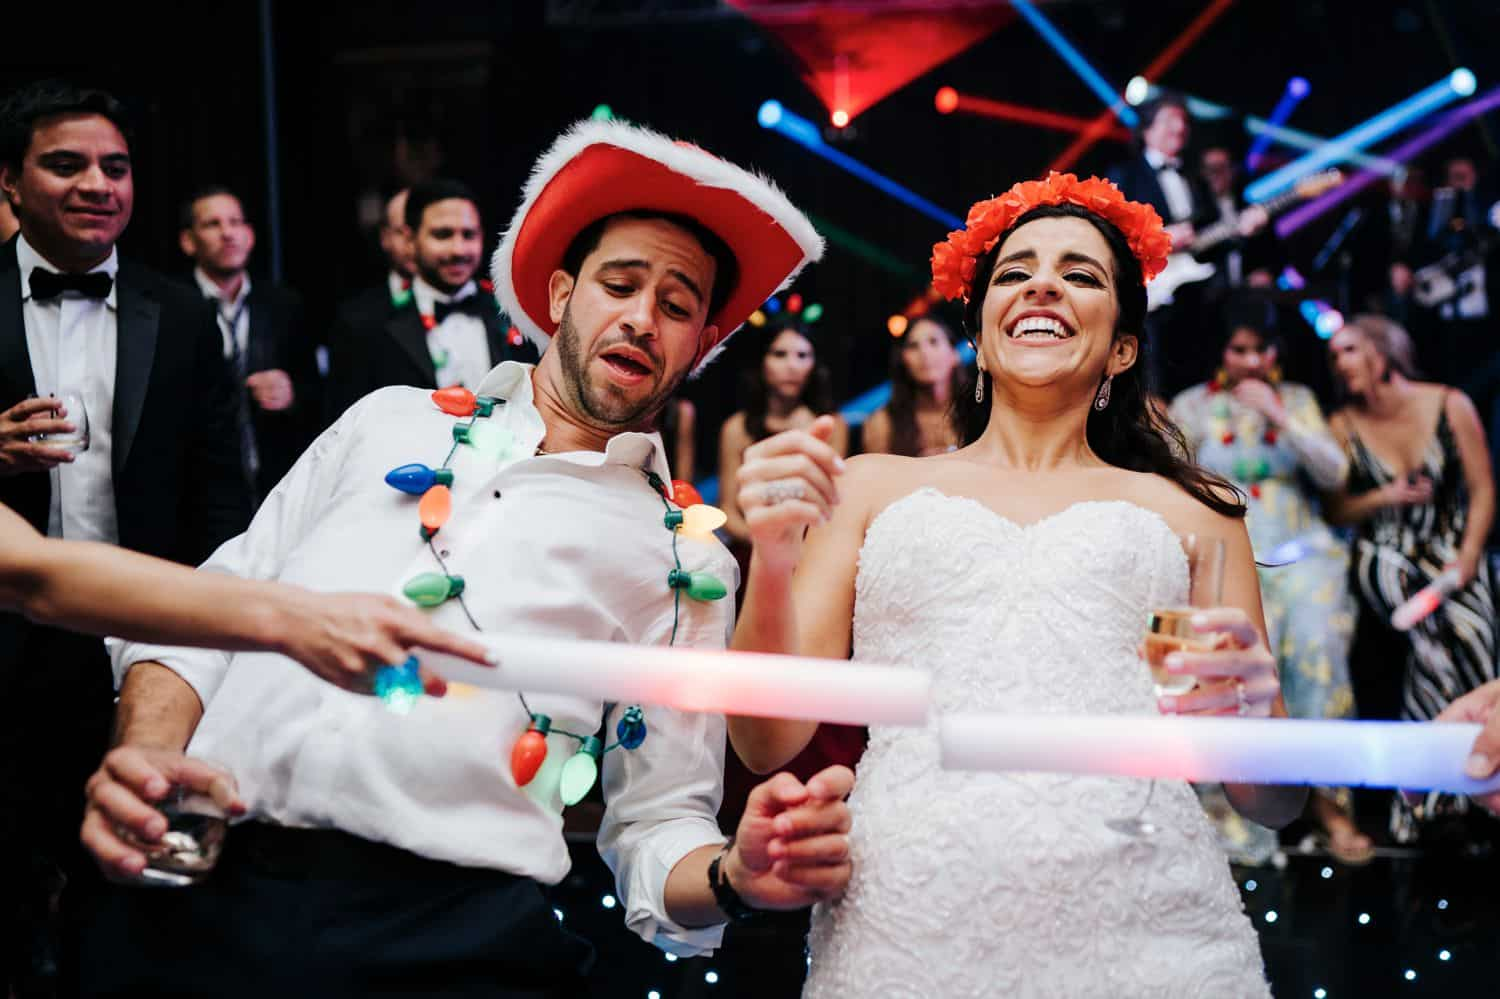 Wedding Print Packages: A bride and groom dance in silly hats at their reception. They are surrounded by guests holding glow sticks.